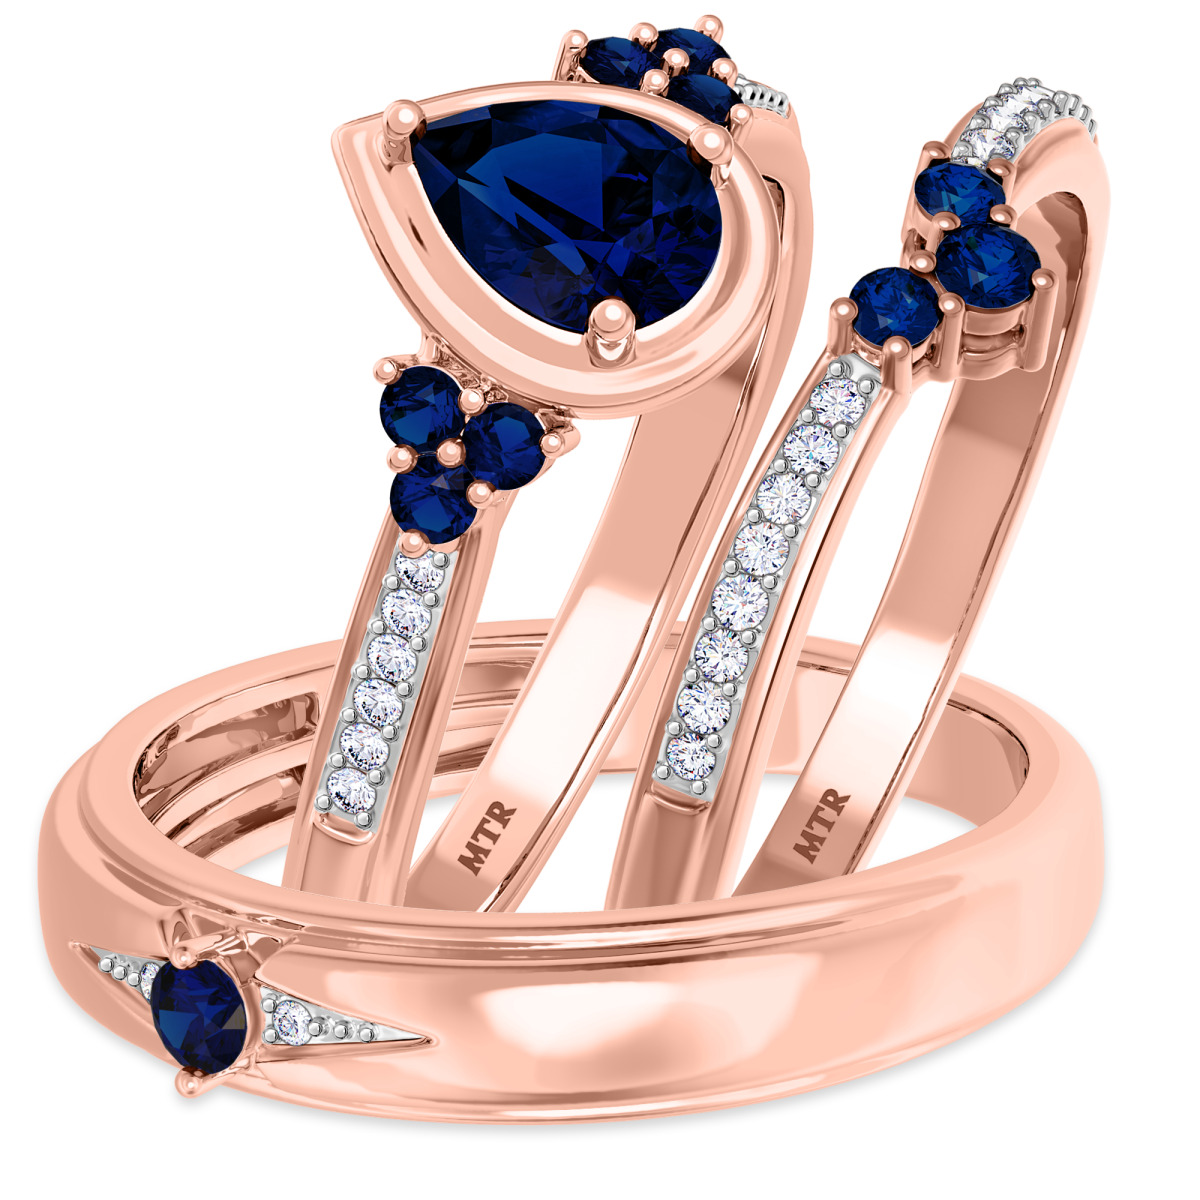 1 Carat T.W. Sapphire Trio Matching Wedding Ring Set 10K Rose Gold